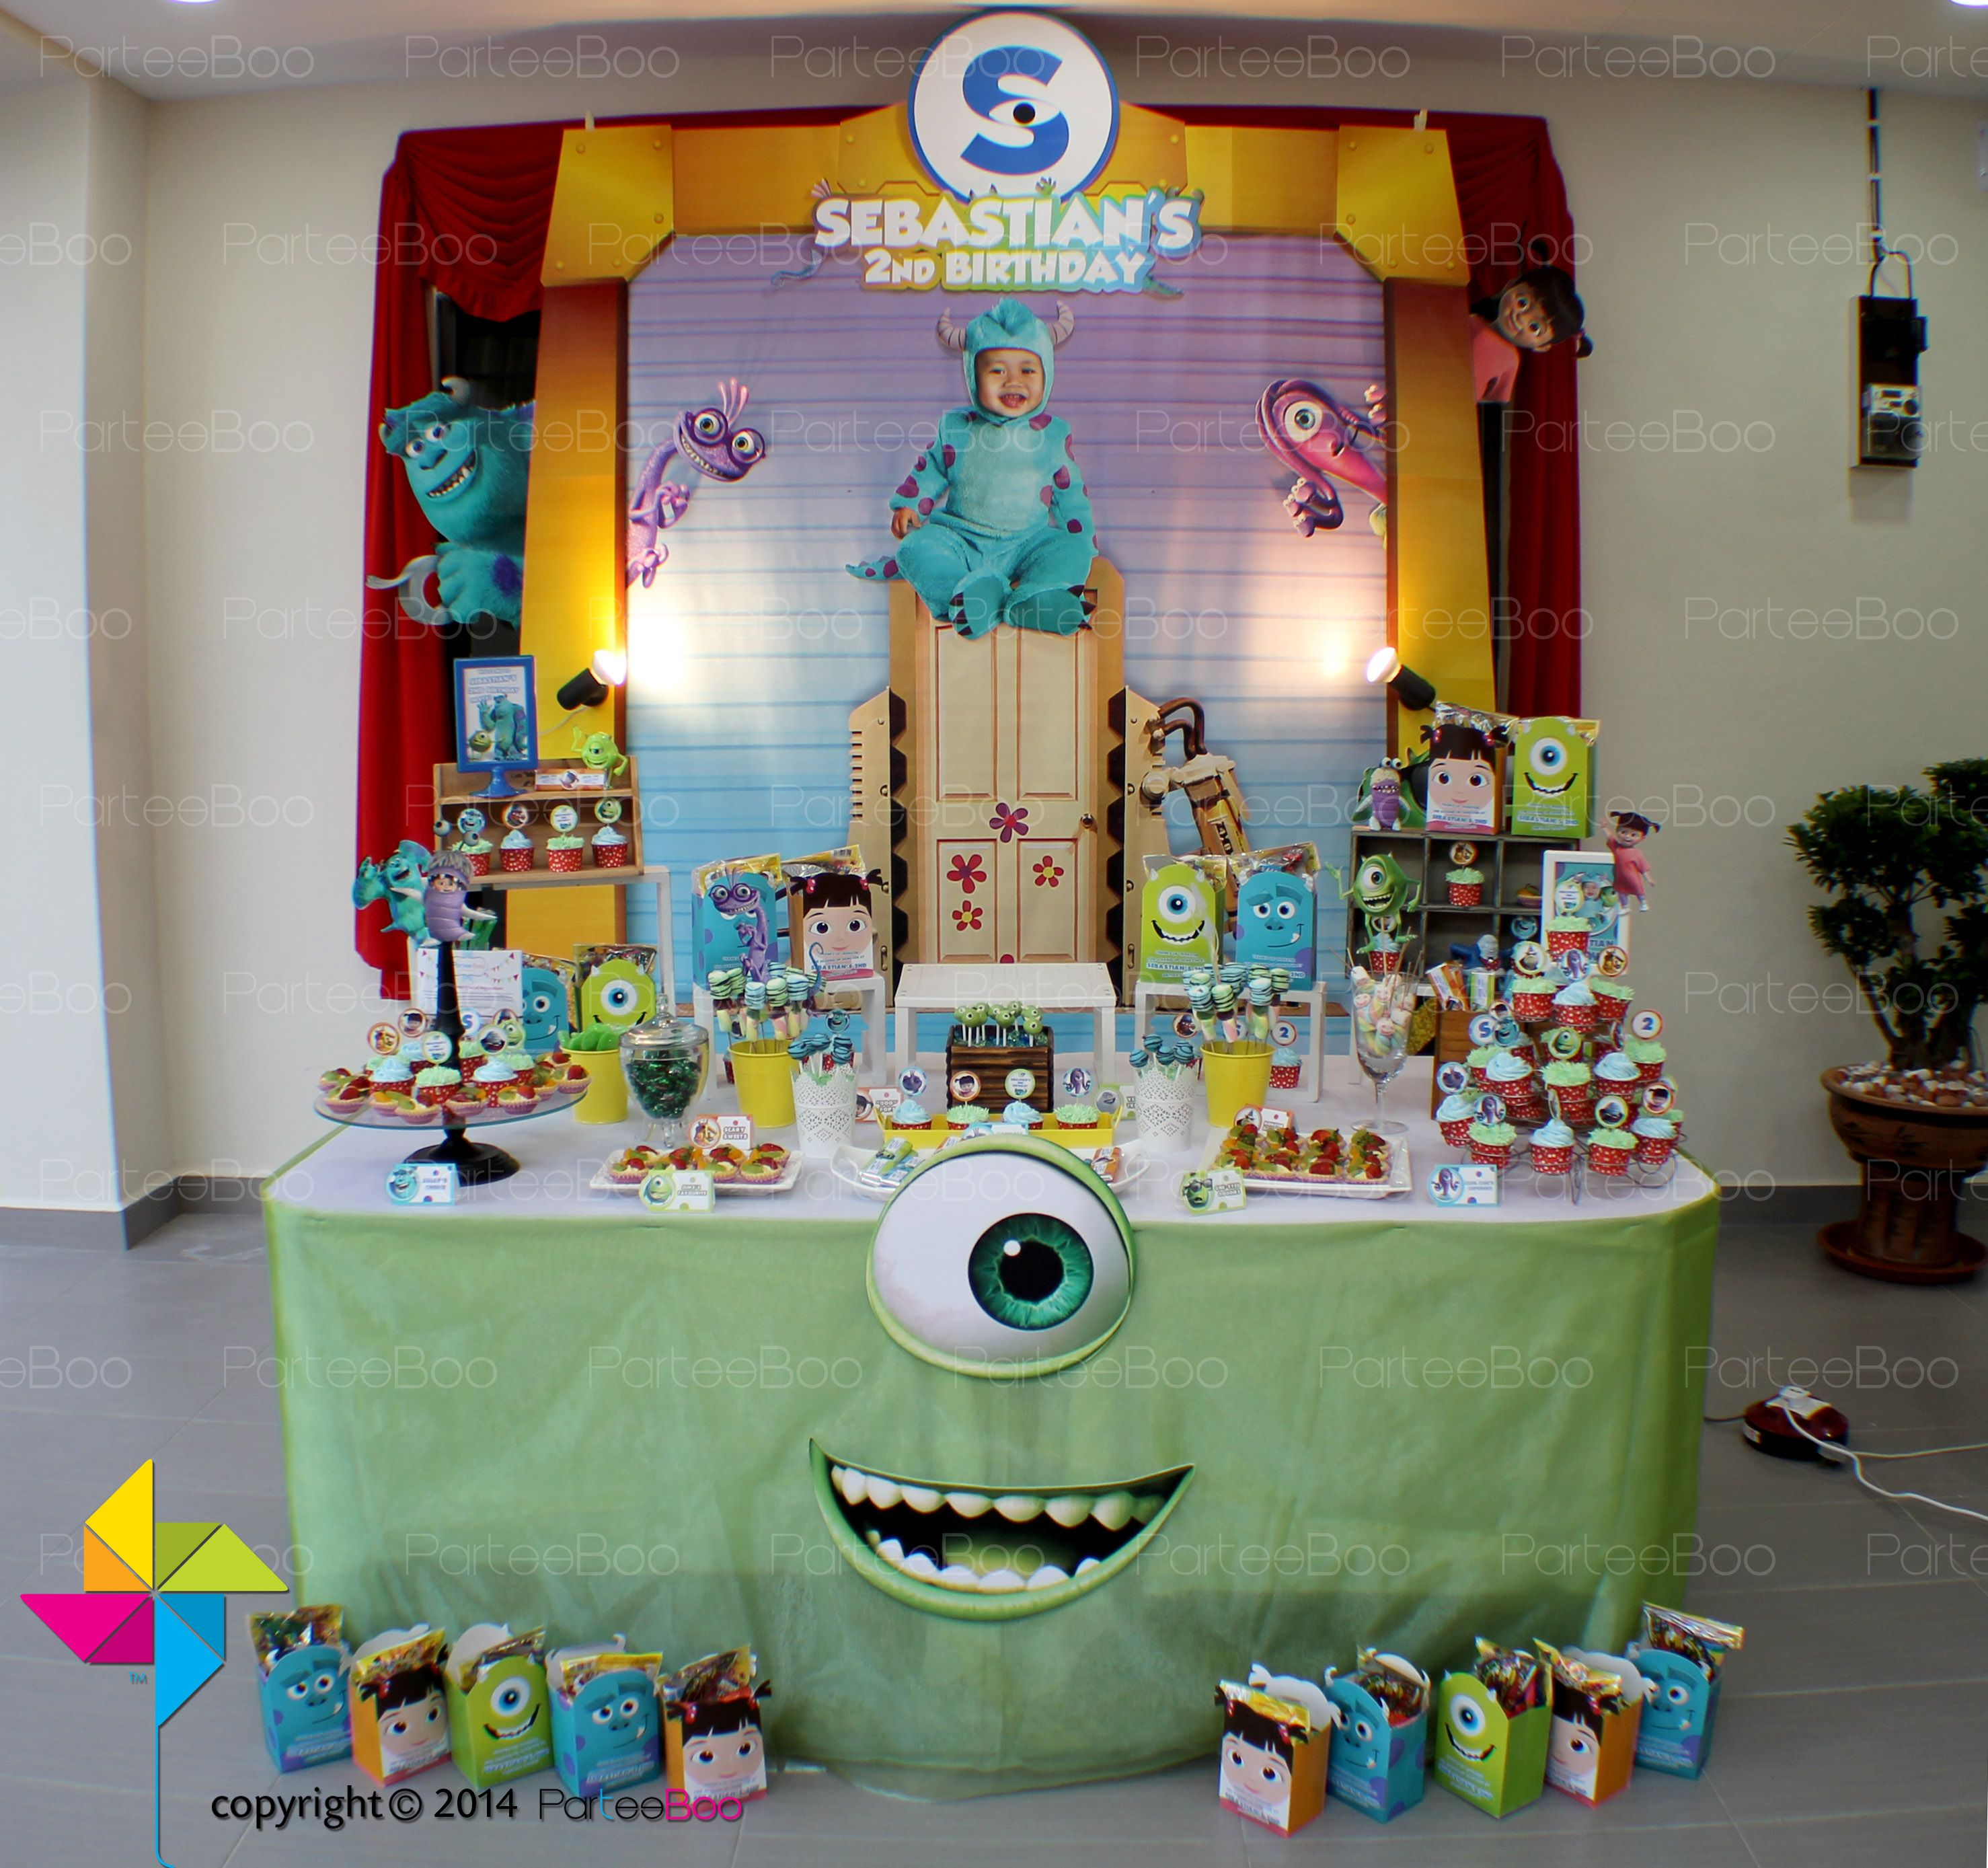 A Monster Inc Themed Birthday Party This Is The Backdrop Candy Buffet And Goodie Boxes Design A Monster 1st Birthdays Monster Inc Birthday Monster Inc Party